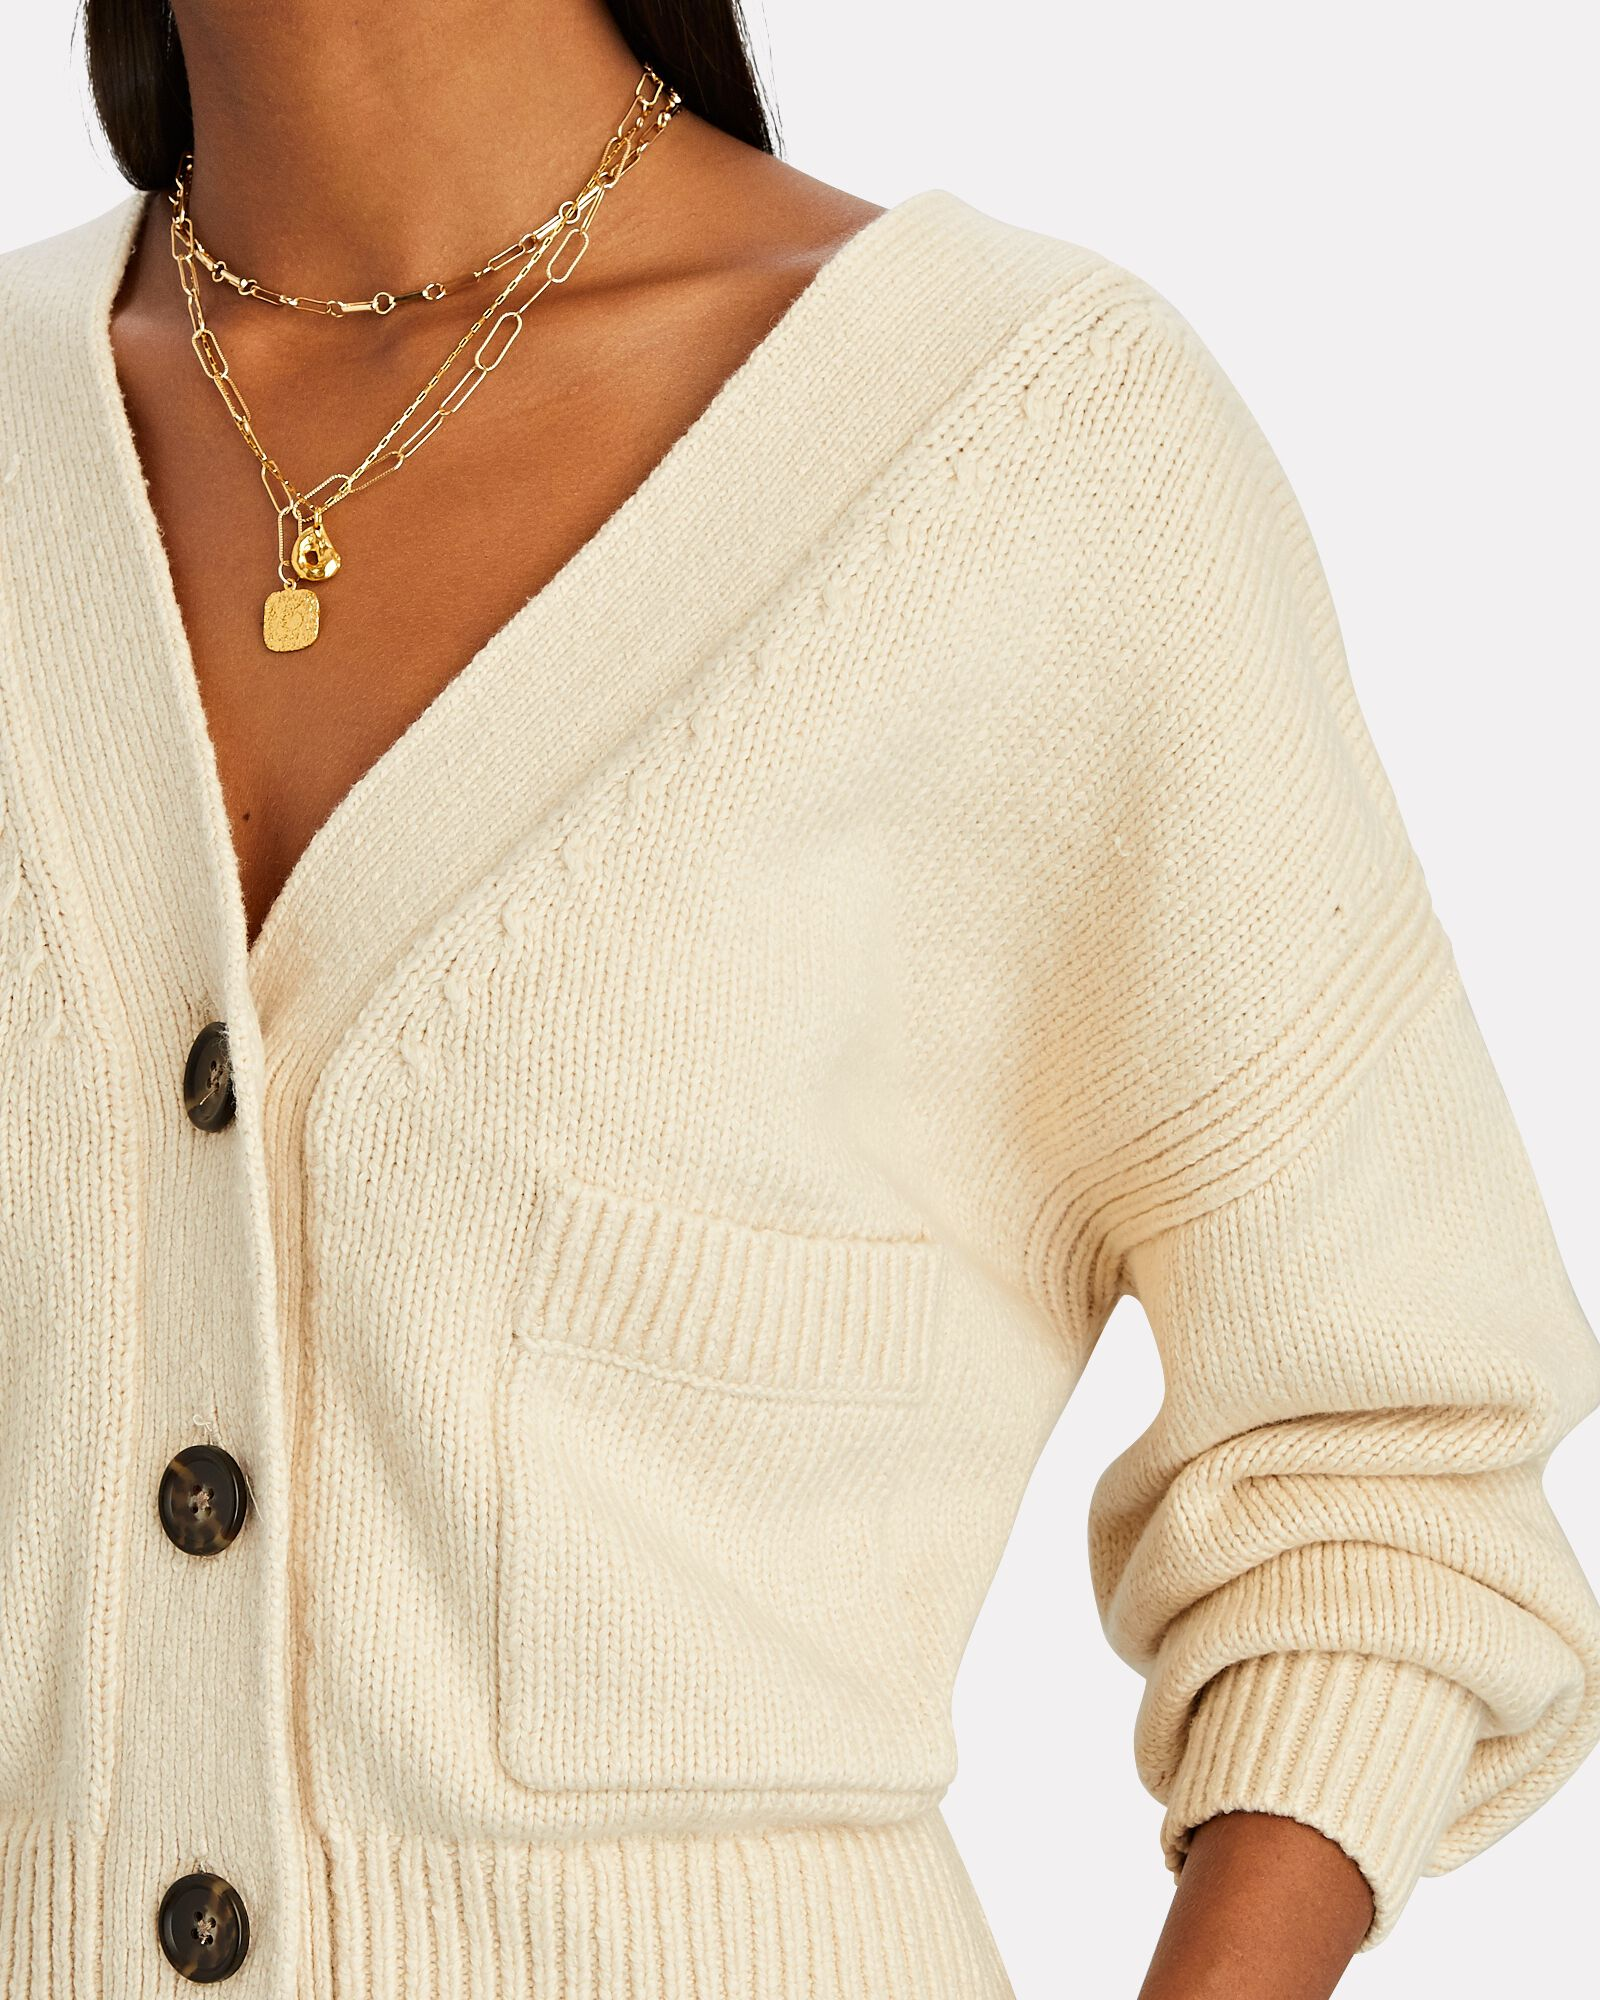 Vincent V-Neck Cotton-Blend Cardigan, BEIGE, hi-res